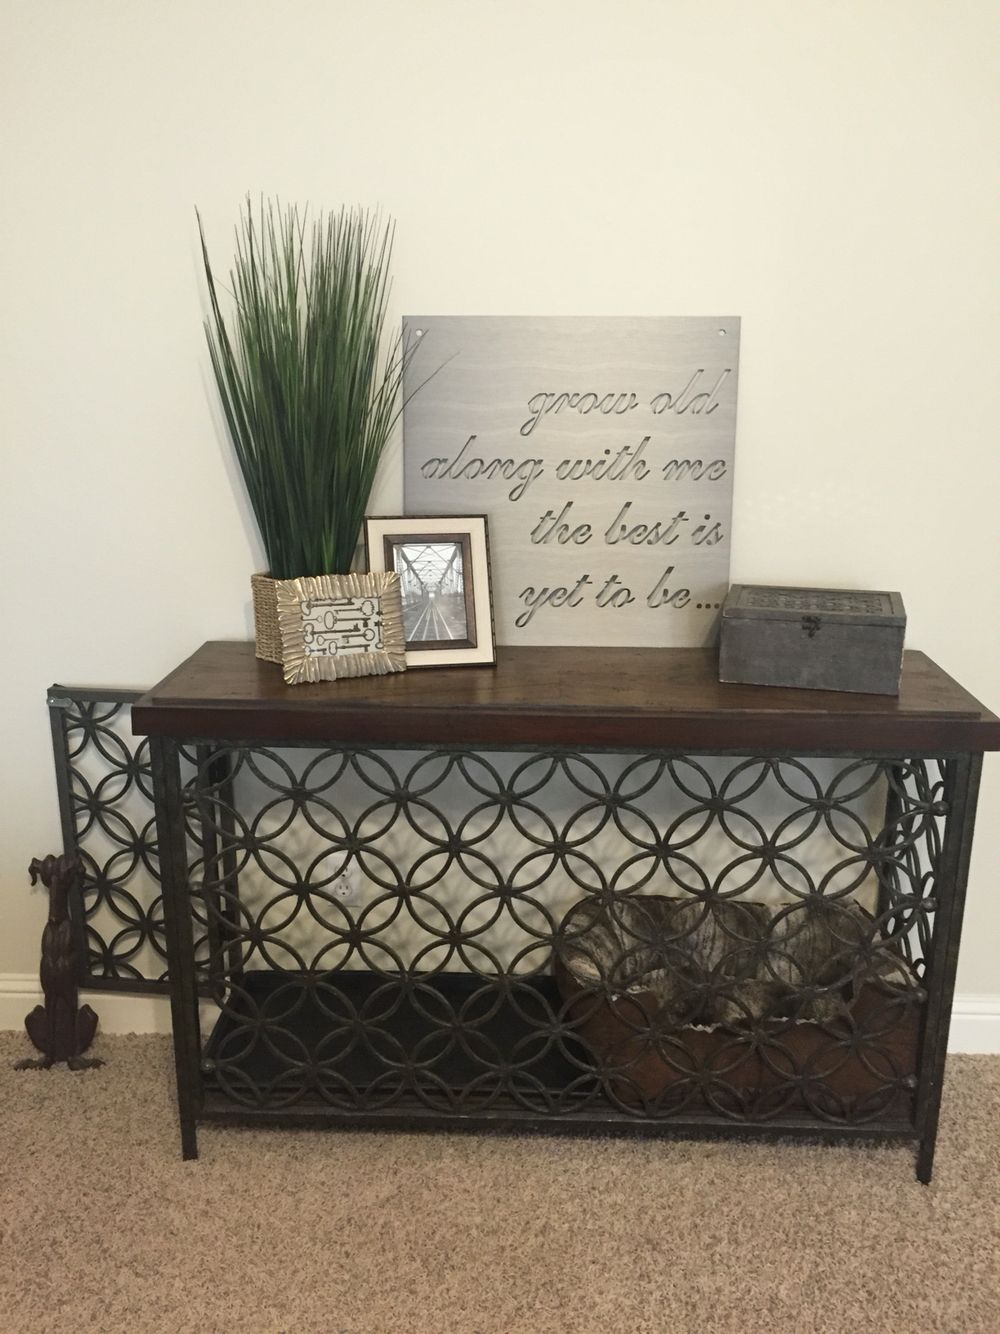 Turned A Console Table Into A Decorative Dog Crate Keep